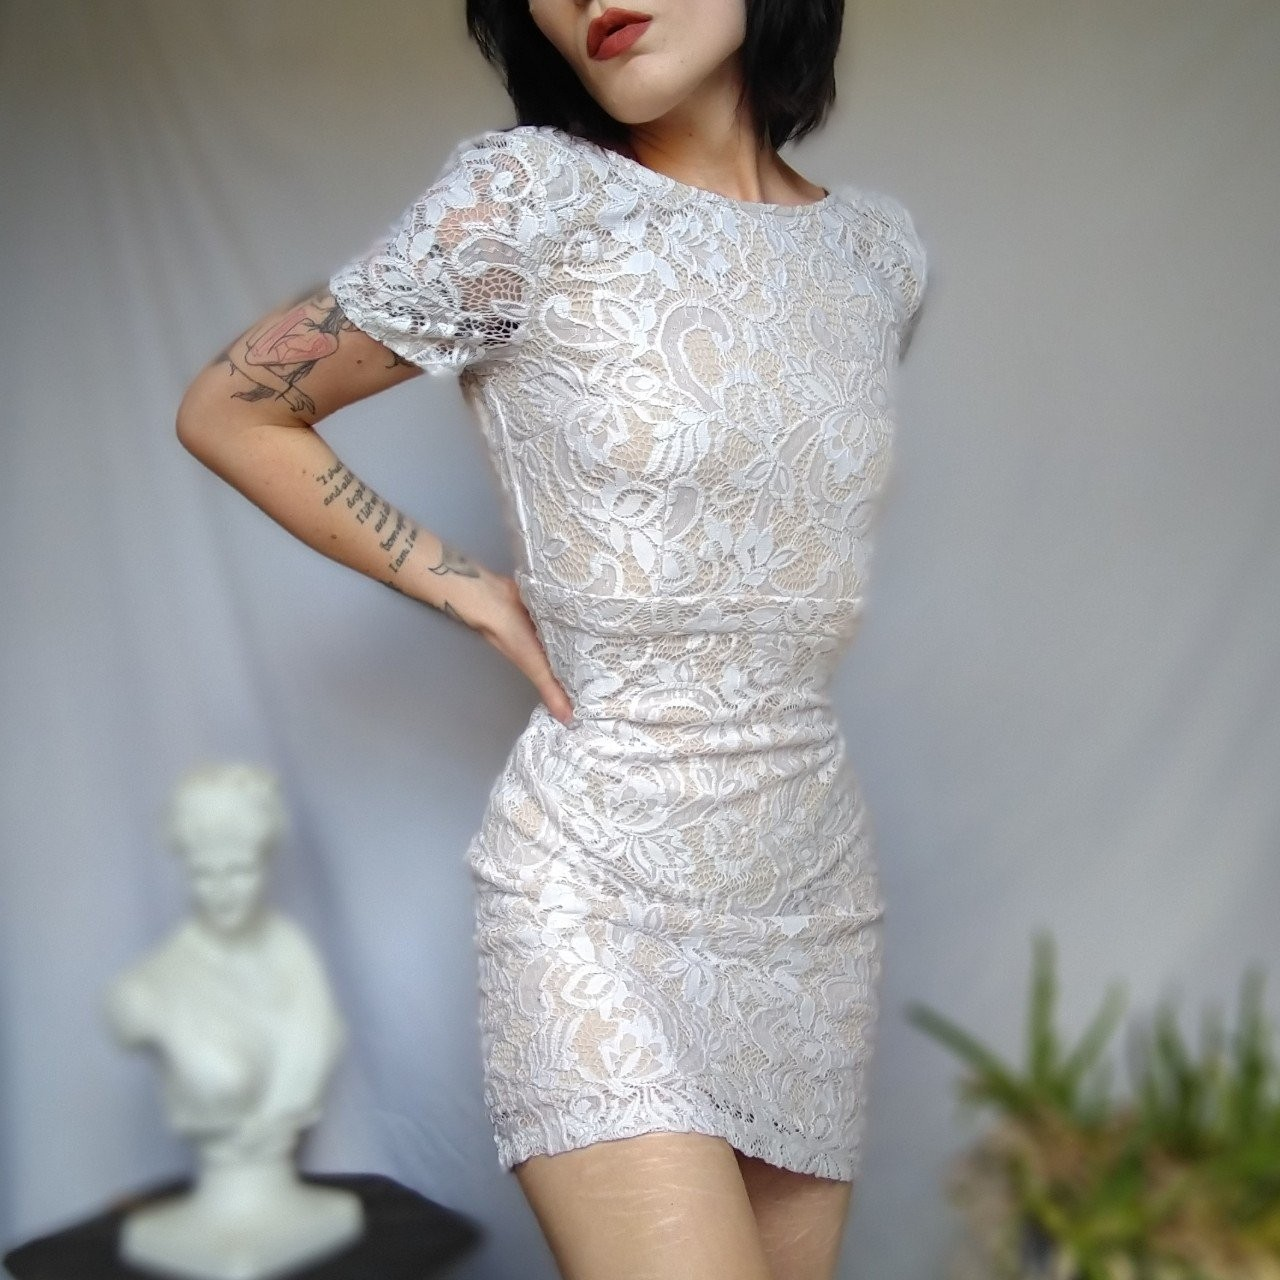 Product Image 1 - Stunning, chic white lace bodycon